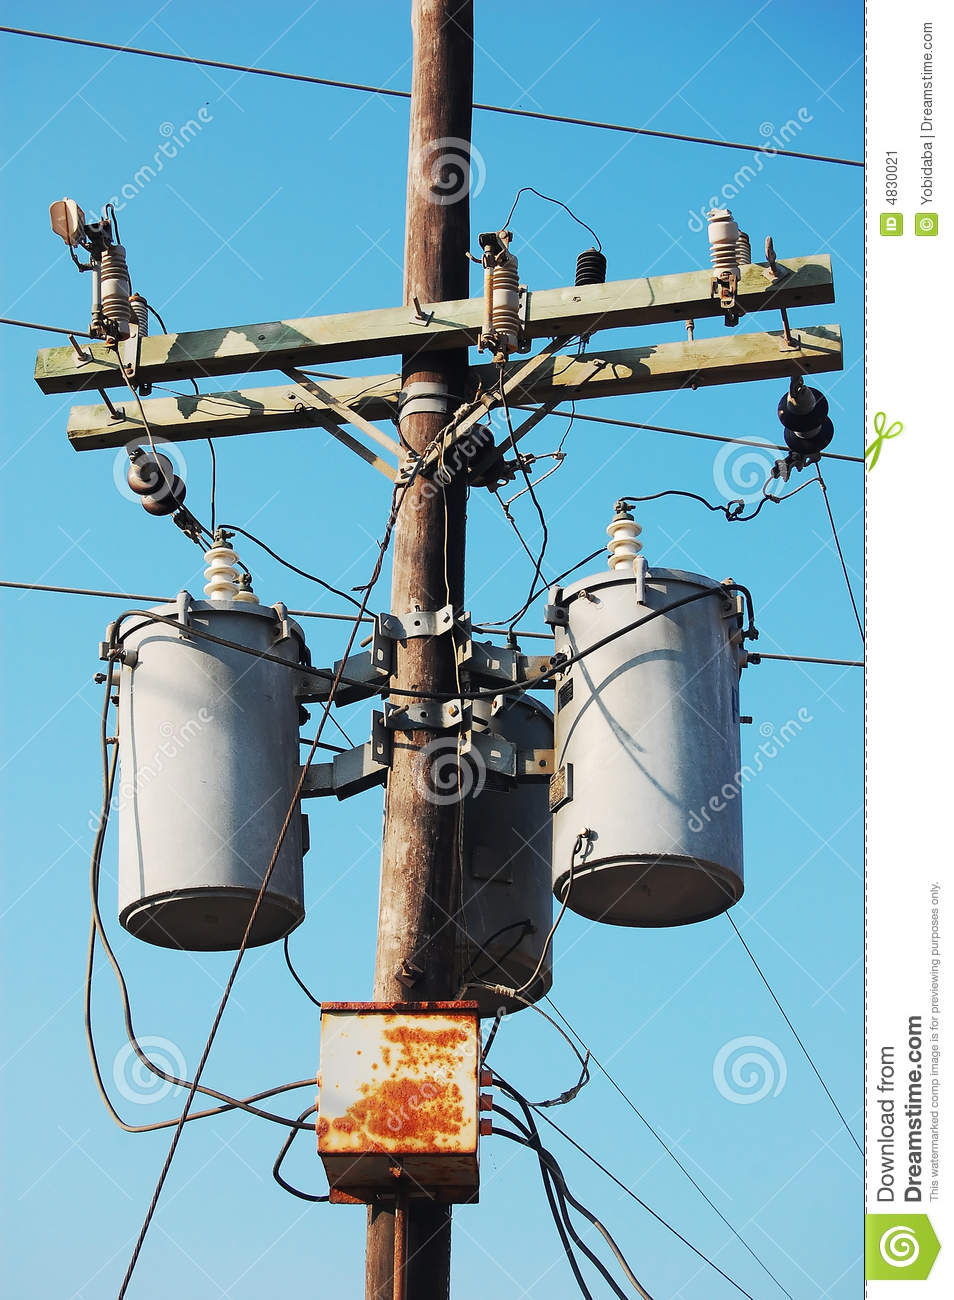 Electrical Transformer Overhead Wiring Diagram Photos